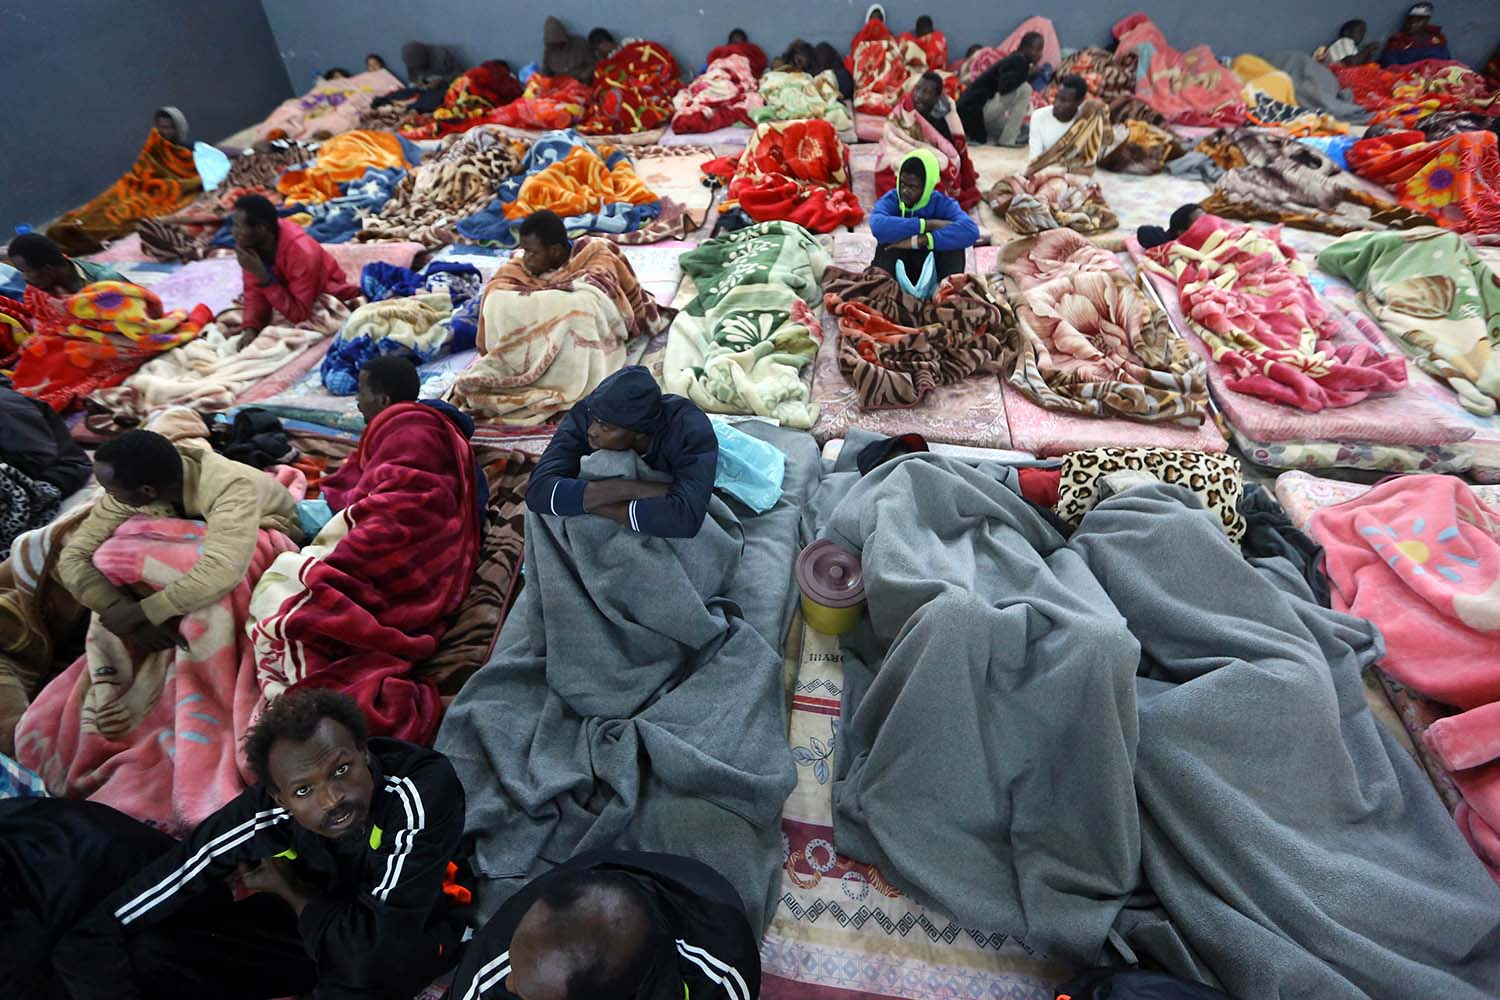 Italy's Failed Migration Fix Has Led to Chaos in Libya